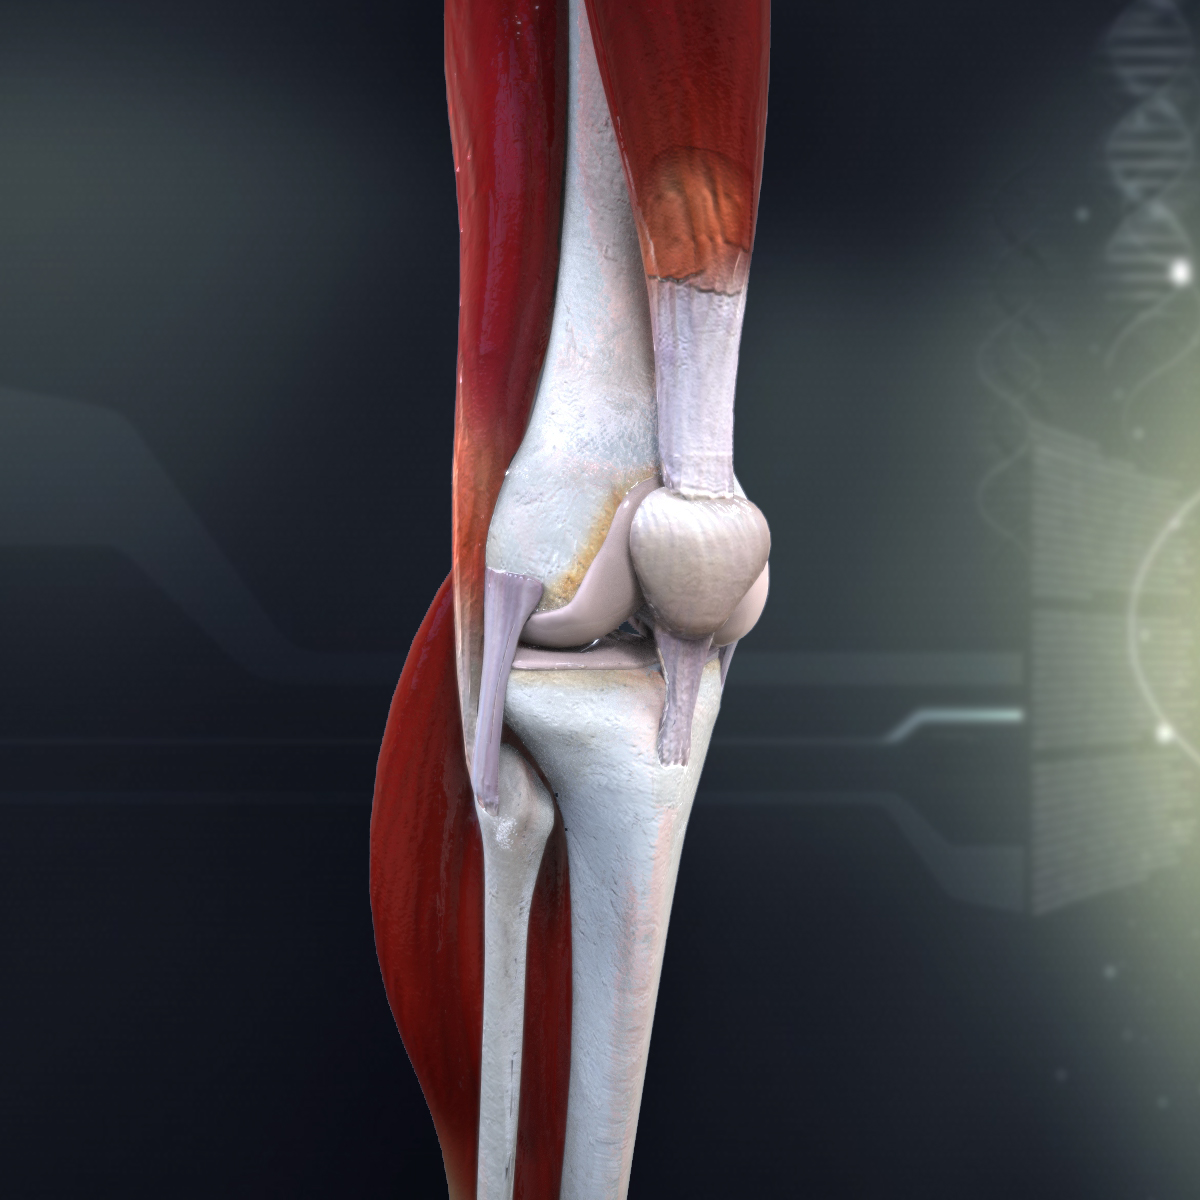 Human knee joint anatomy 3d model 07 40 27 759 knee 3 4 ccuart Gallery